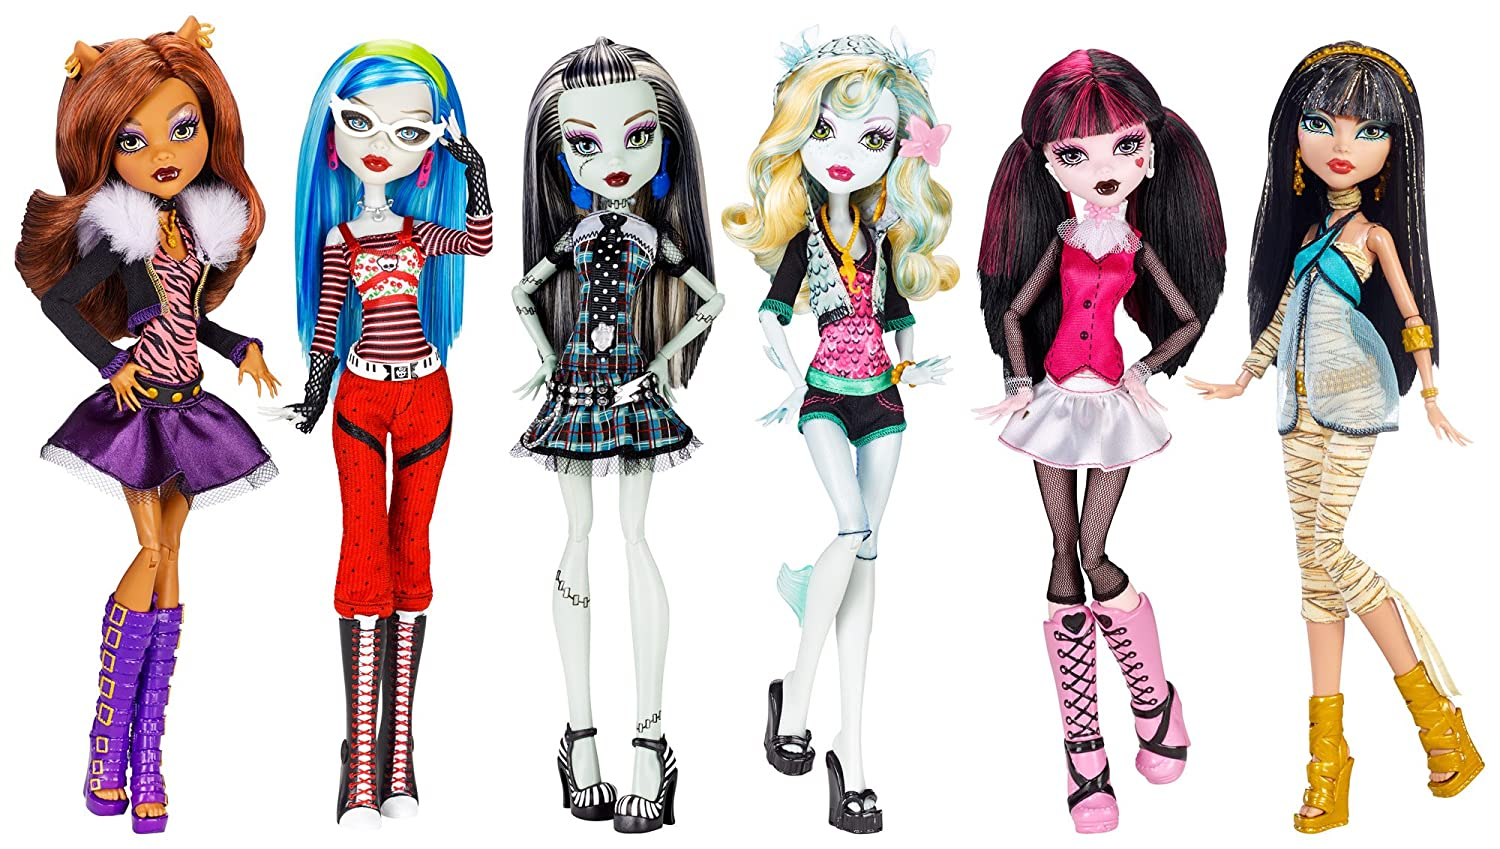 Uncategorized Images Of Monster High amazon com monster high dolls original ghouls collection discontinued by manufacturer toys games